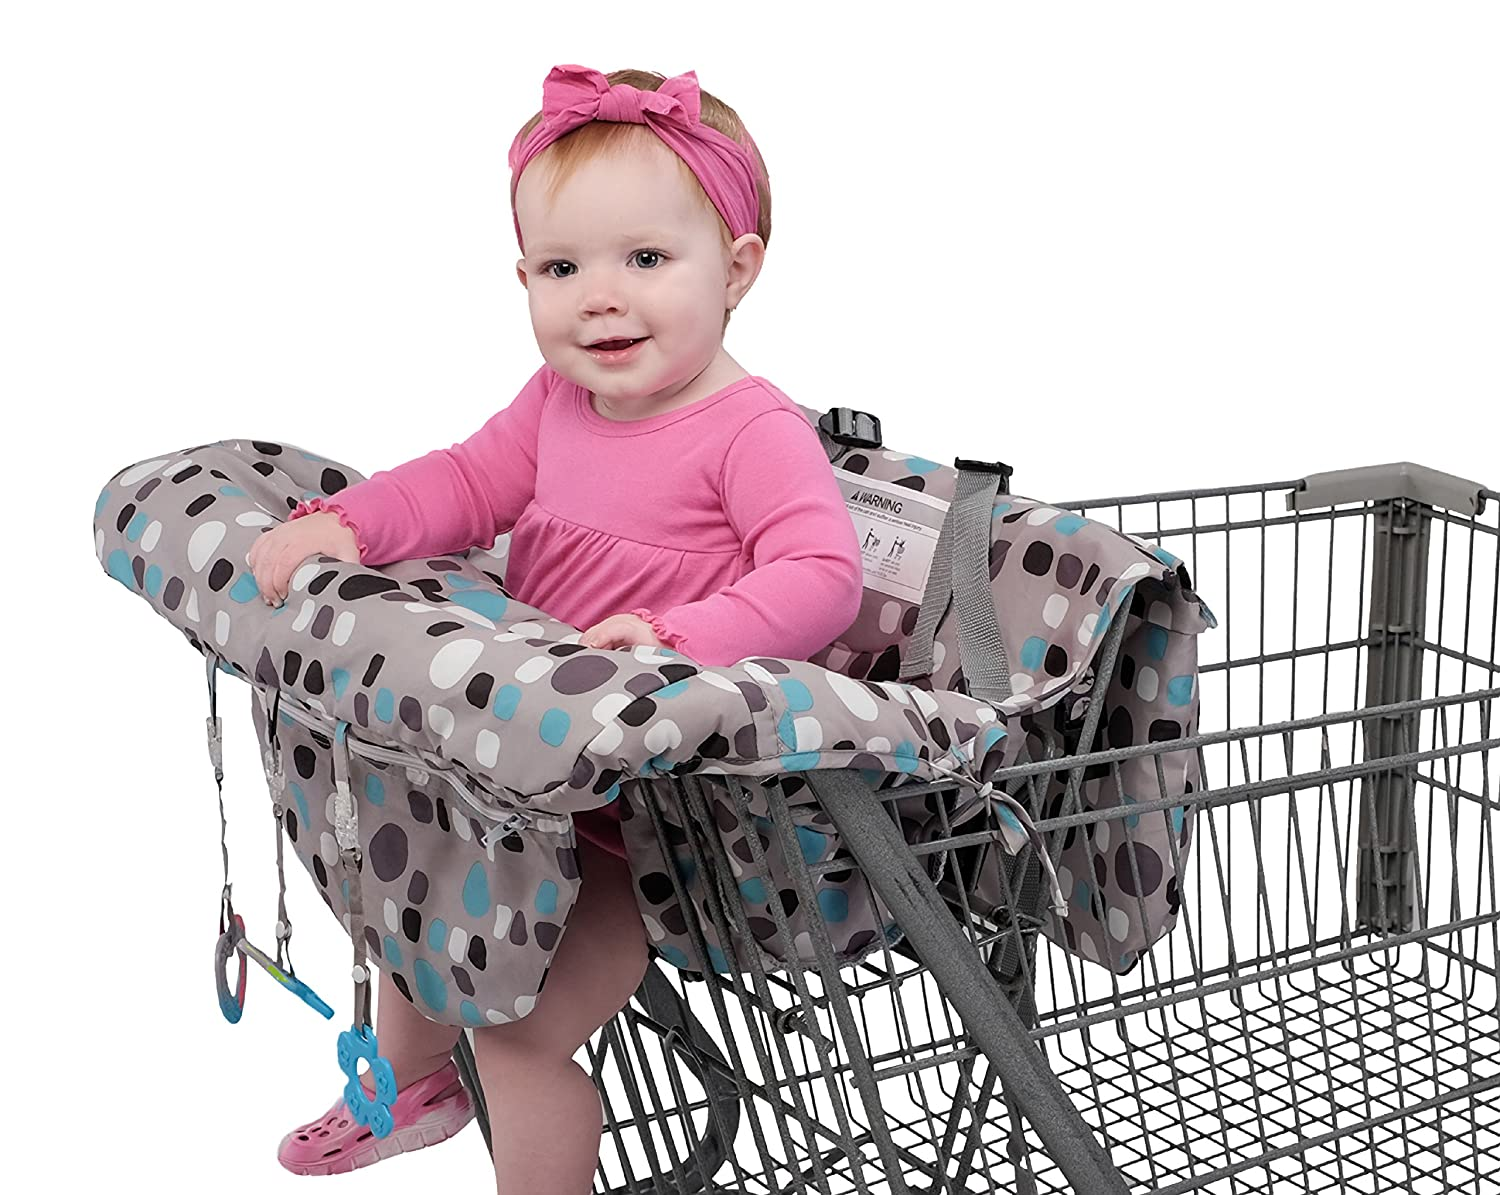 Babyezz 2-in-1 Shopping Cart & High Chair Cover for Baby- Machine Washable with carrying pouch